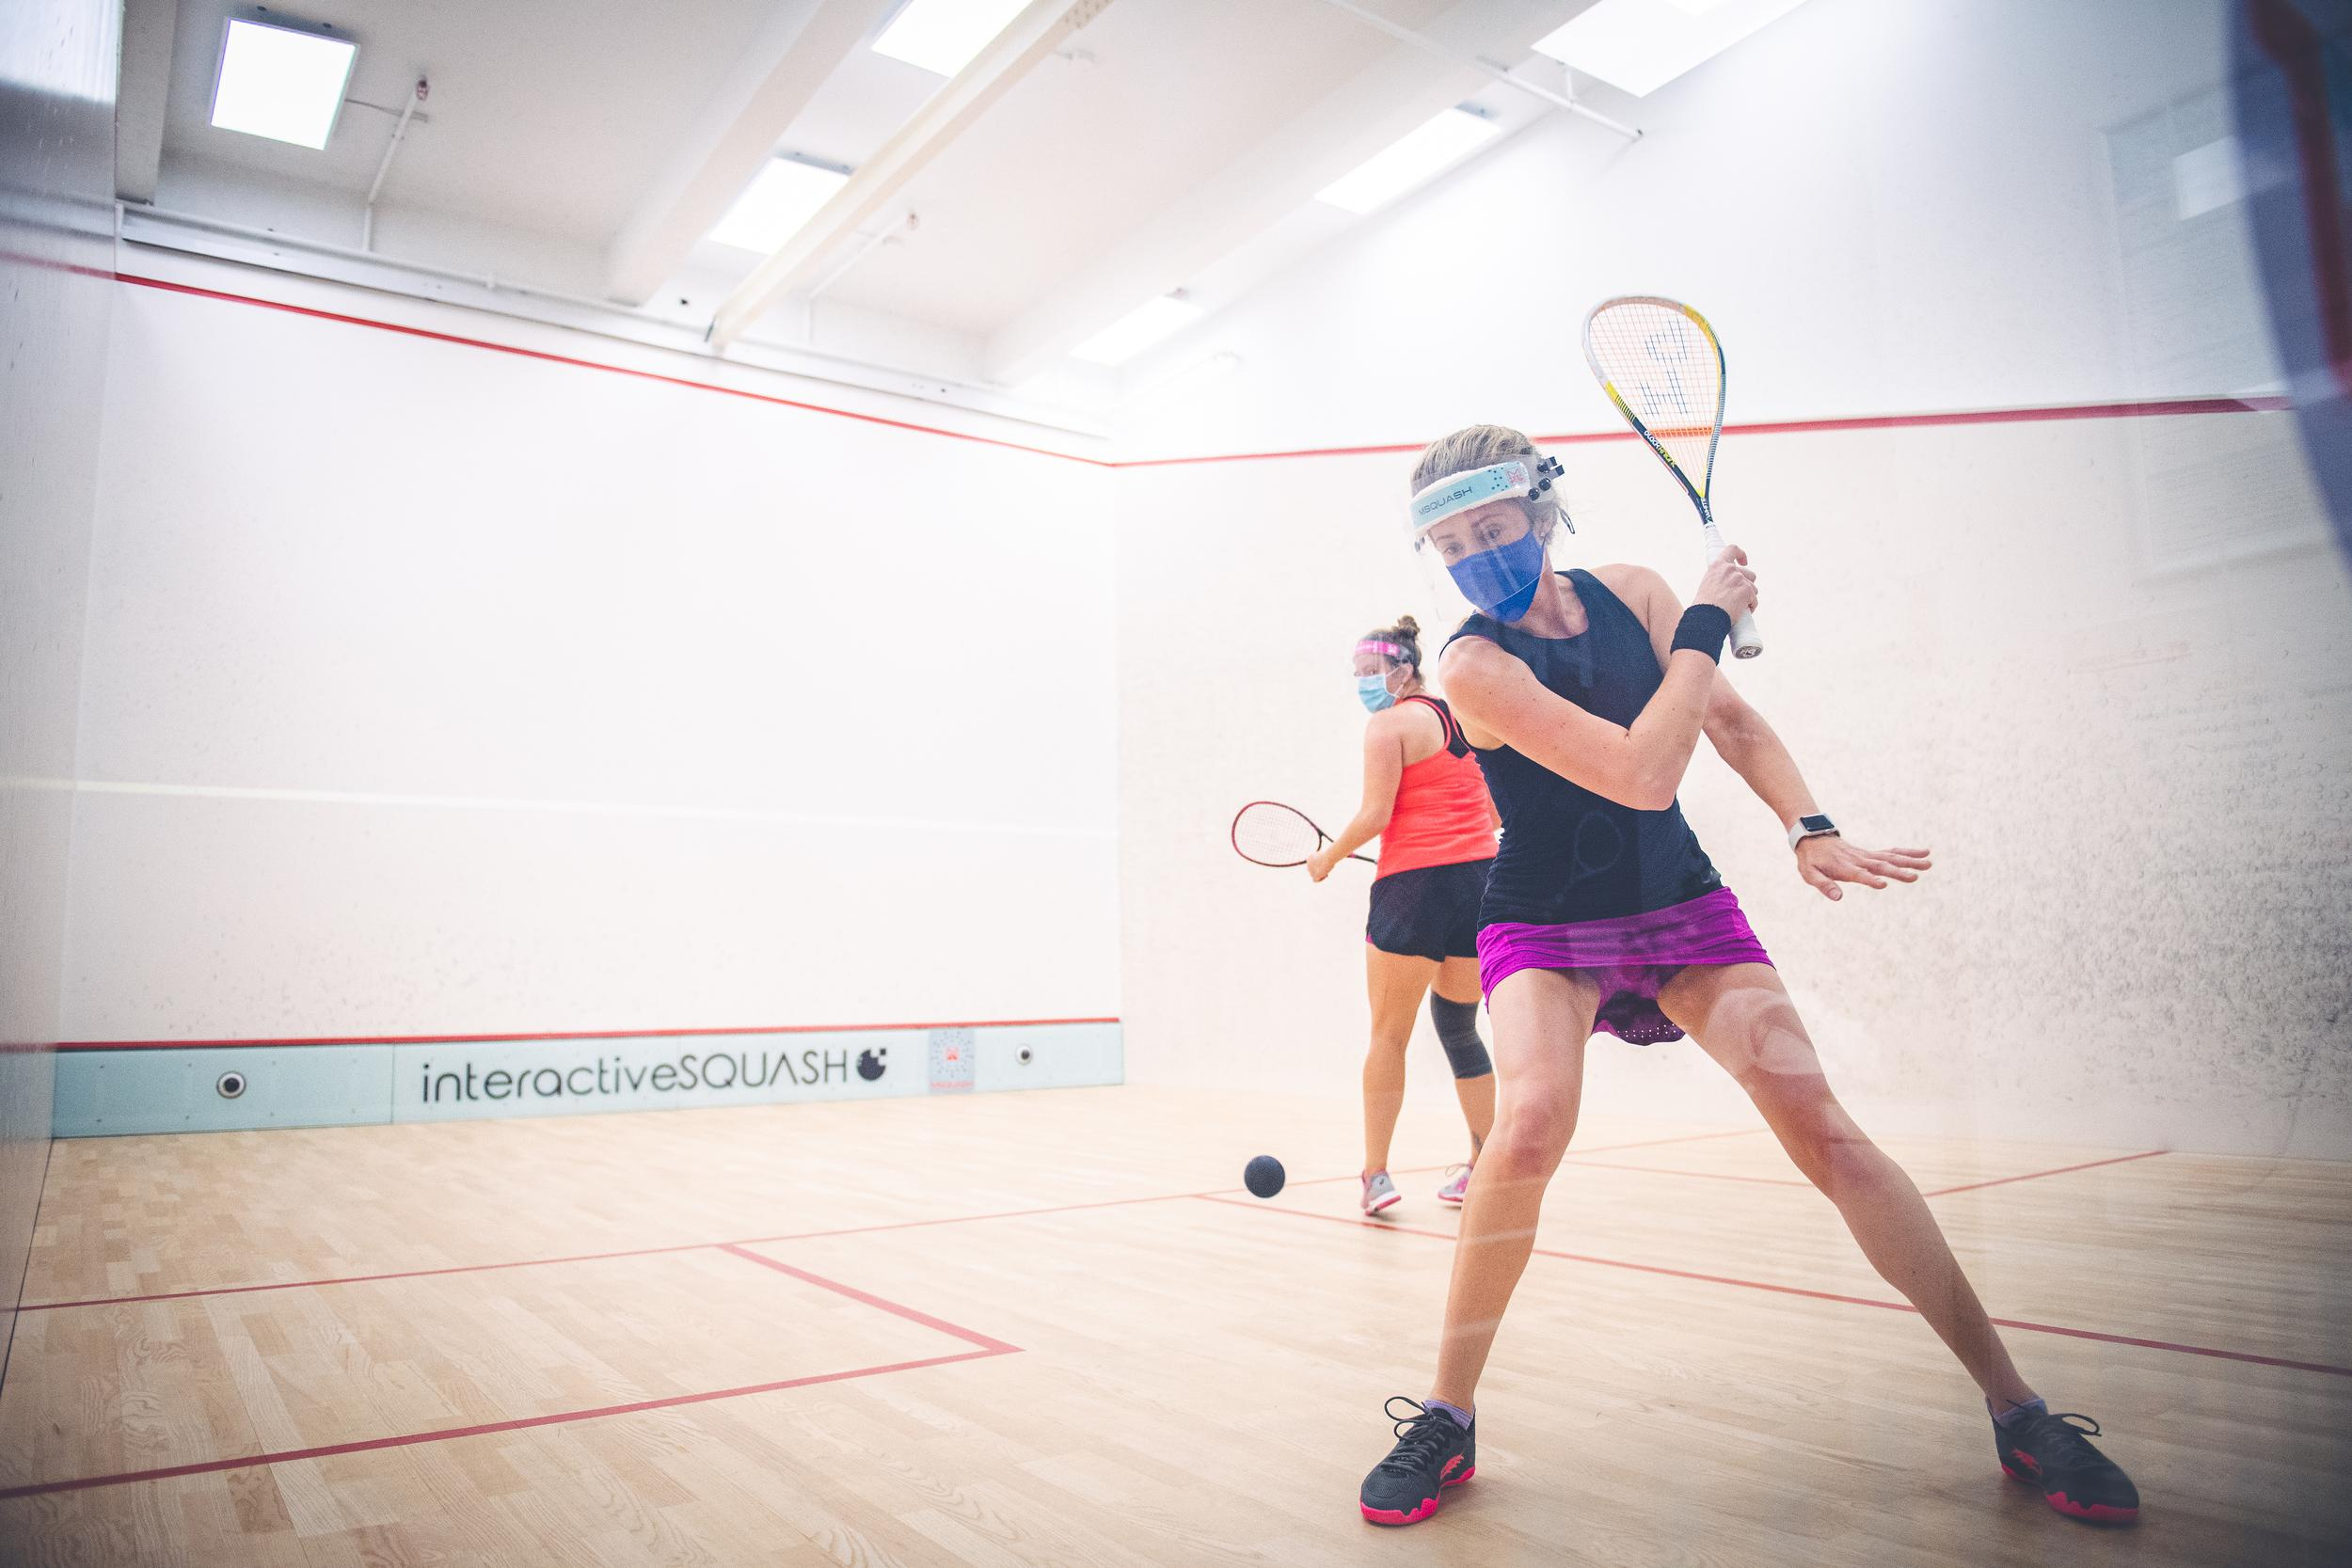 This is an image of squash training in Darien, CN.